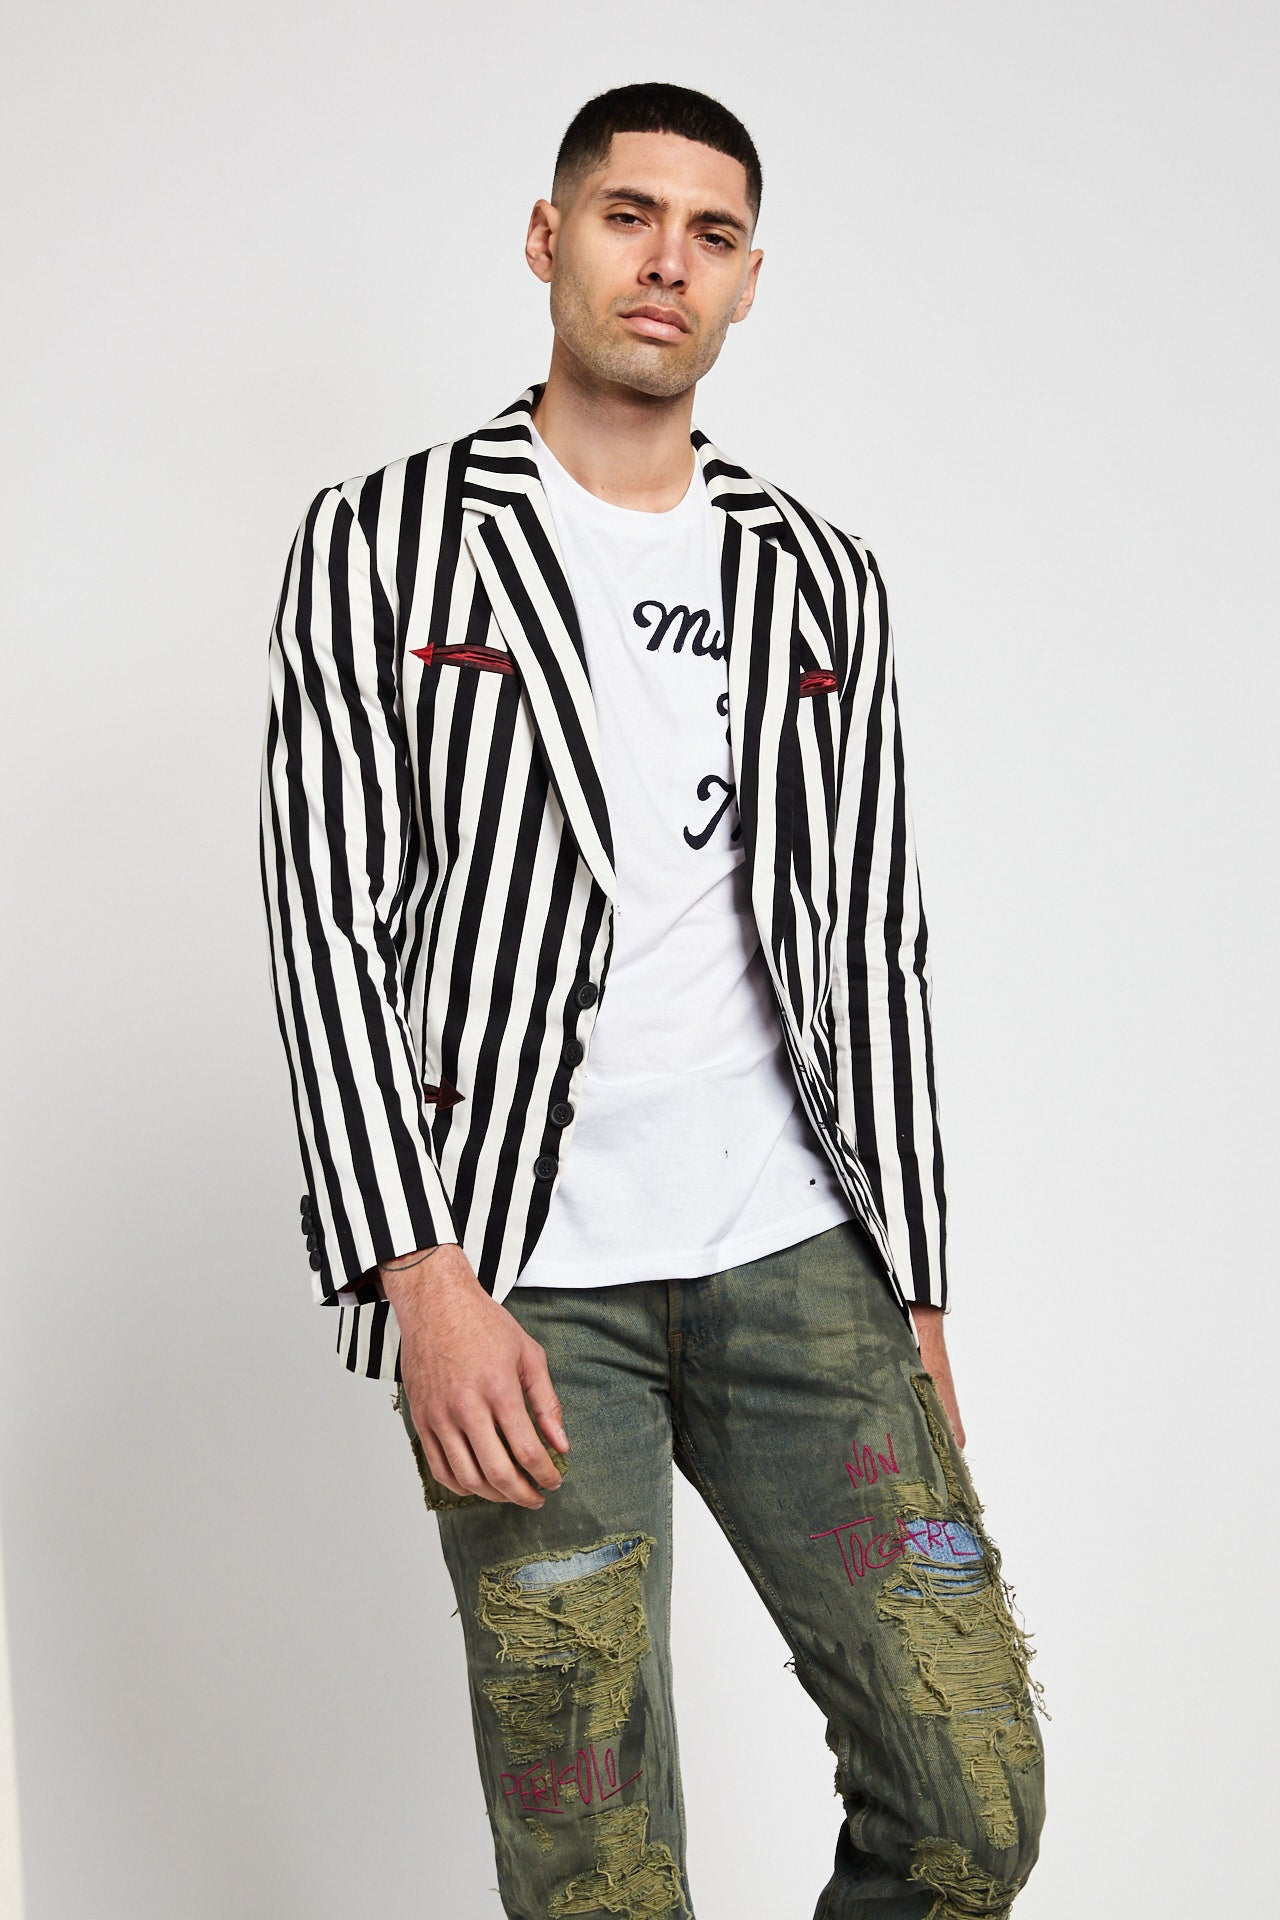 BLACK & WHITE STRIPED BLAZER JACKET-JACKETS-Mundane Official-XL-Mundane Official